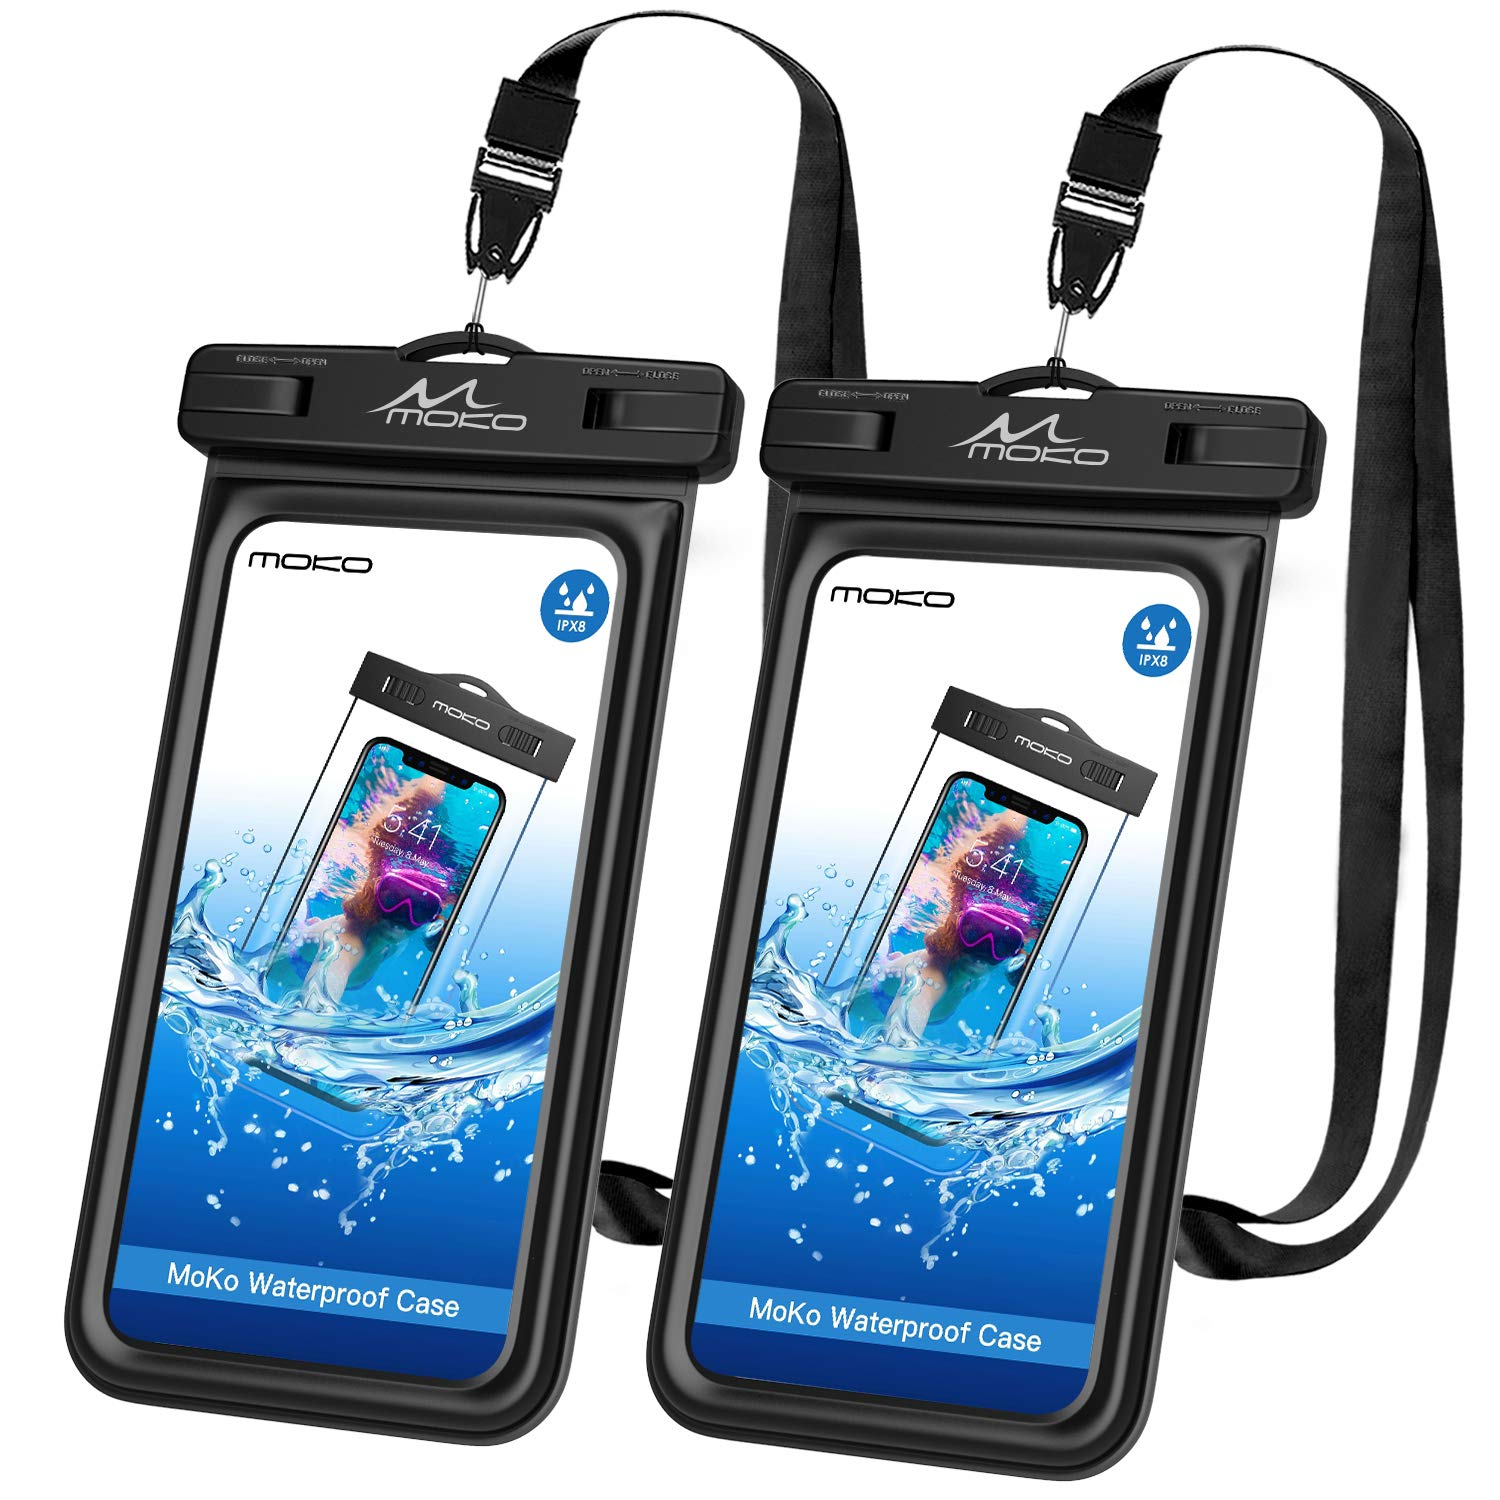 MoKo Floating Waterproof Phone Pouch [2 Pack], Waterproof Cellphone Case Dry Bag with Lanyard Compatible with iPhone X/Xs/Xr/Xs Max, 8/7/6s Plus, Samsung Galaxy S10/S9/S8 Plus, S10 e, Note 9/8, 6.5'' by MoKo